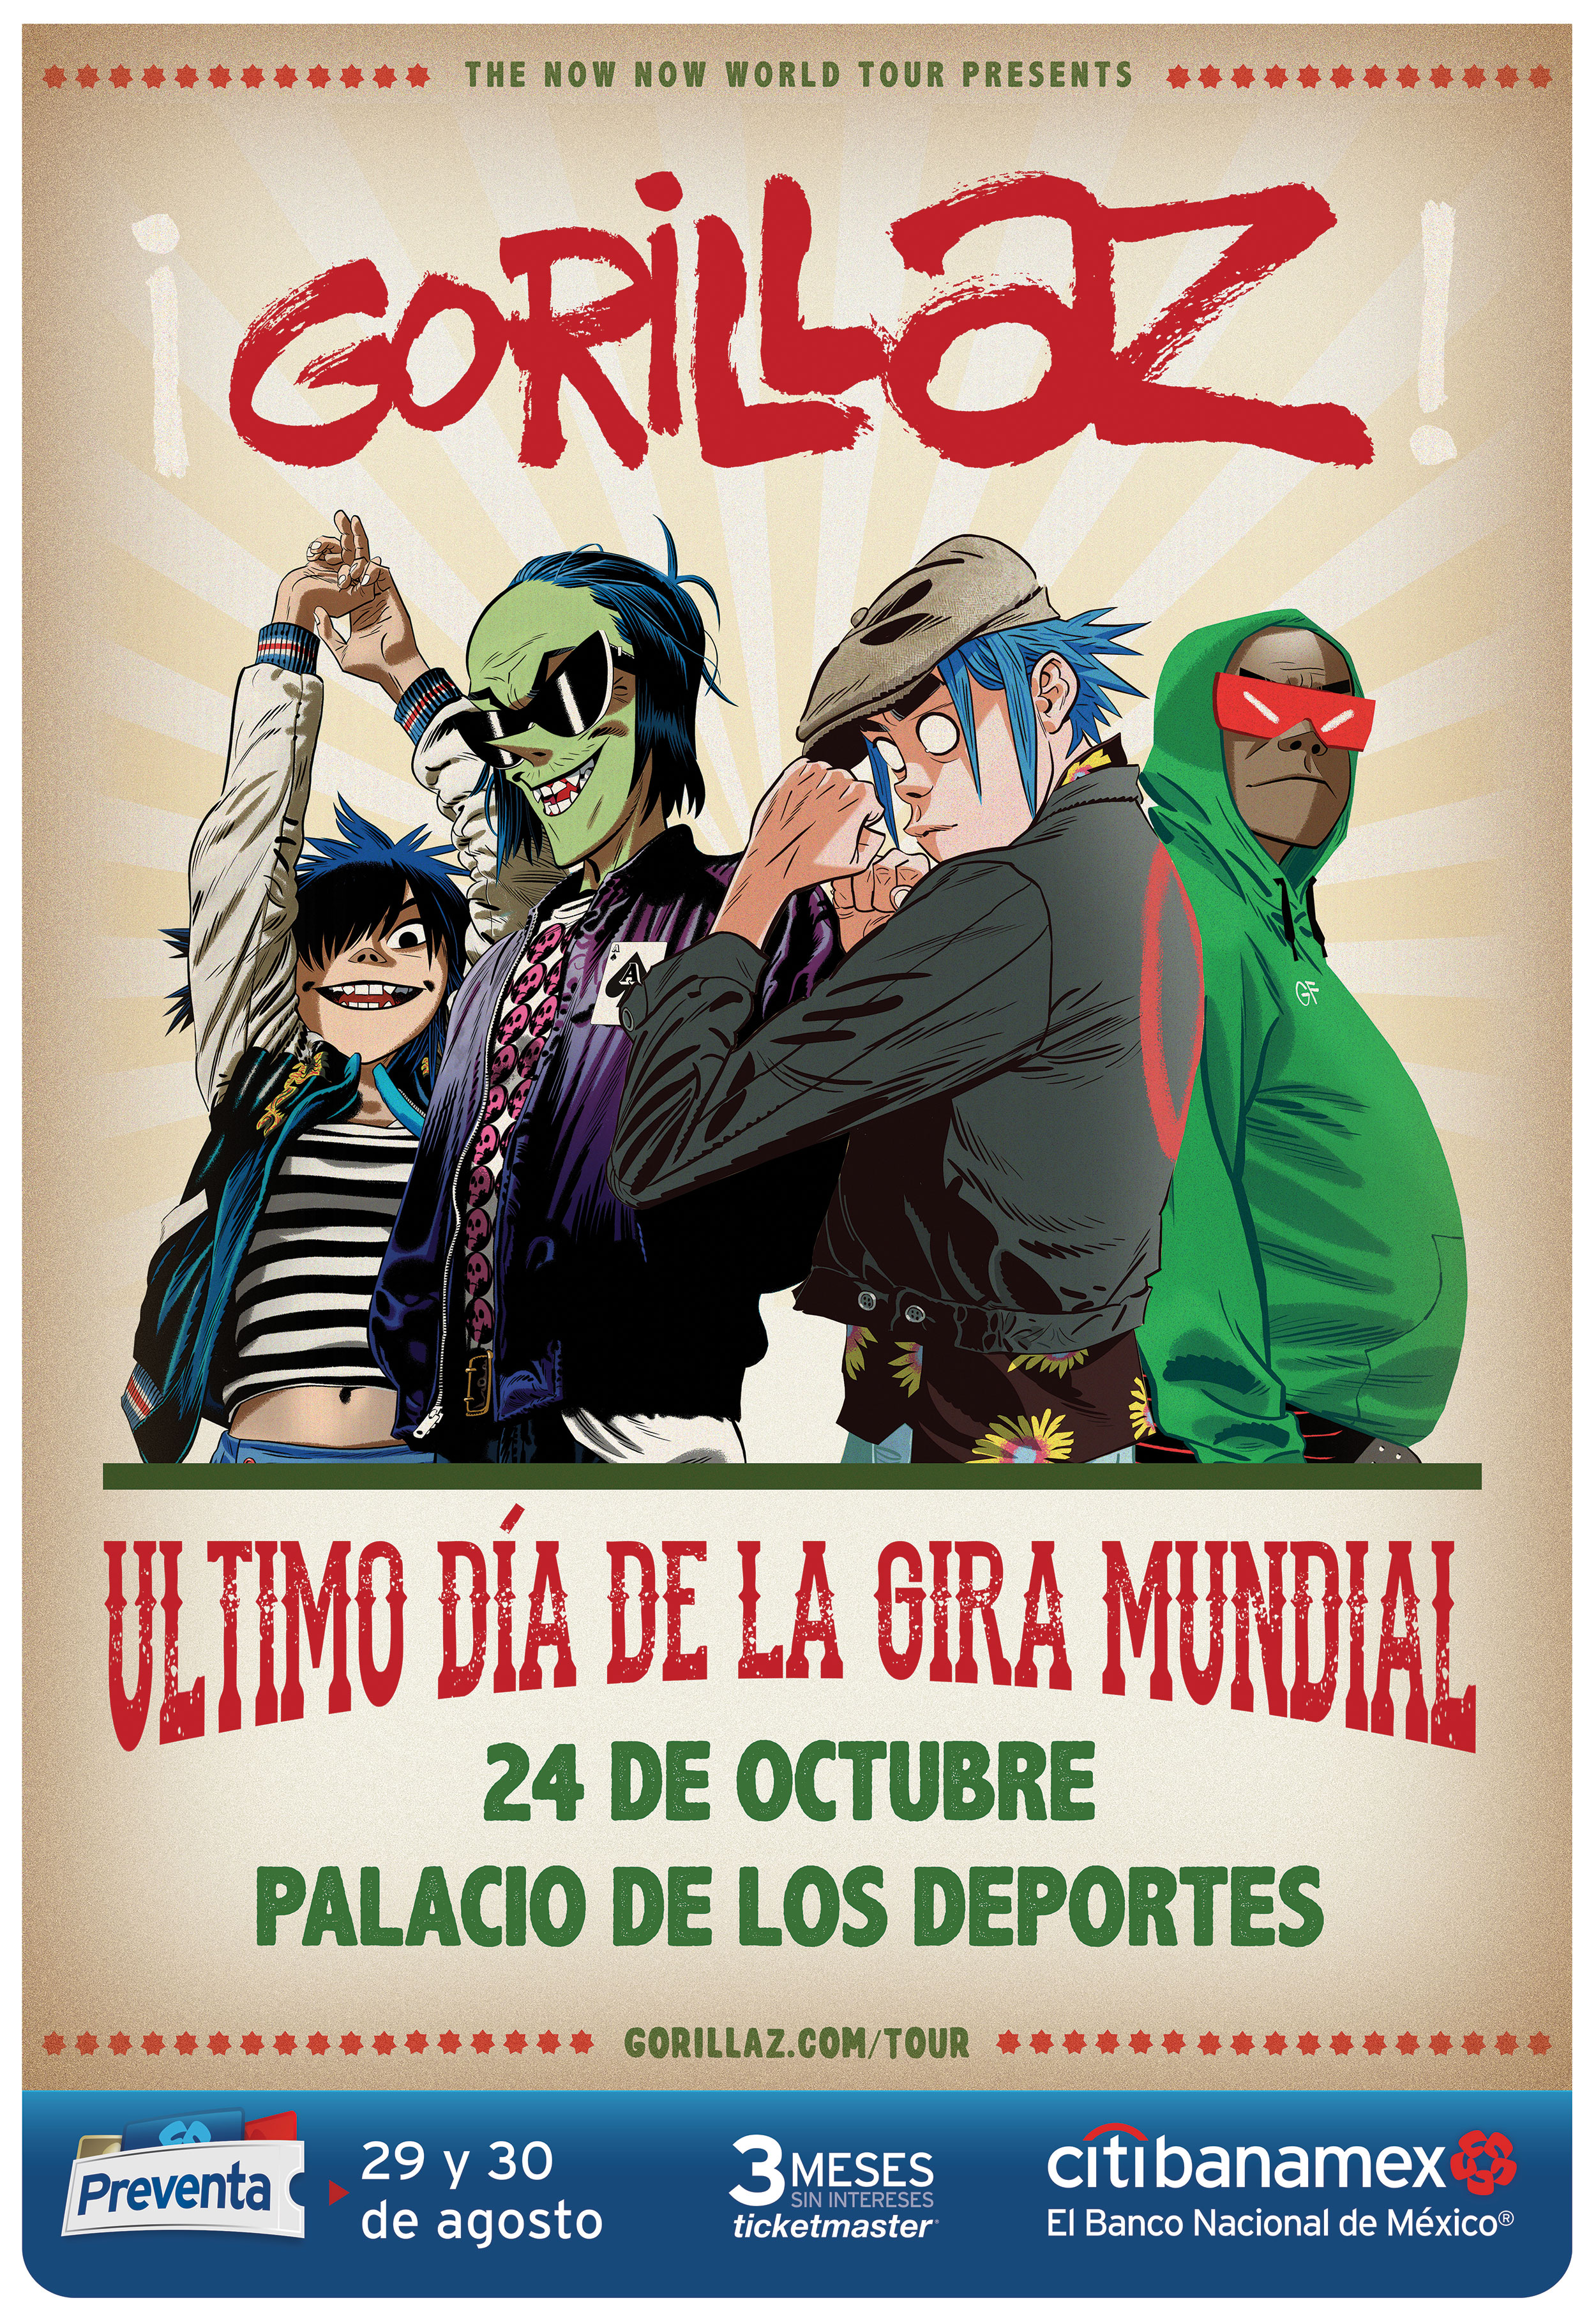 Gorillaz announce show in Mexico City